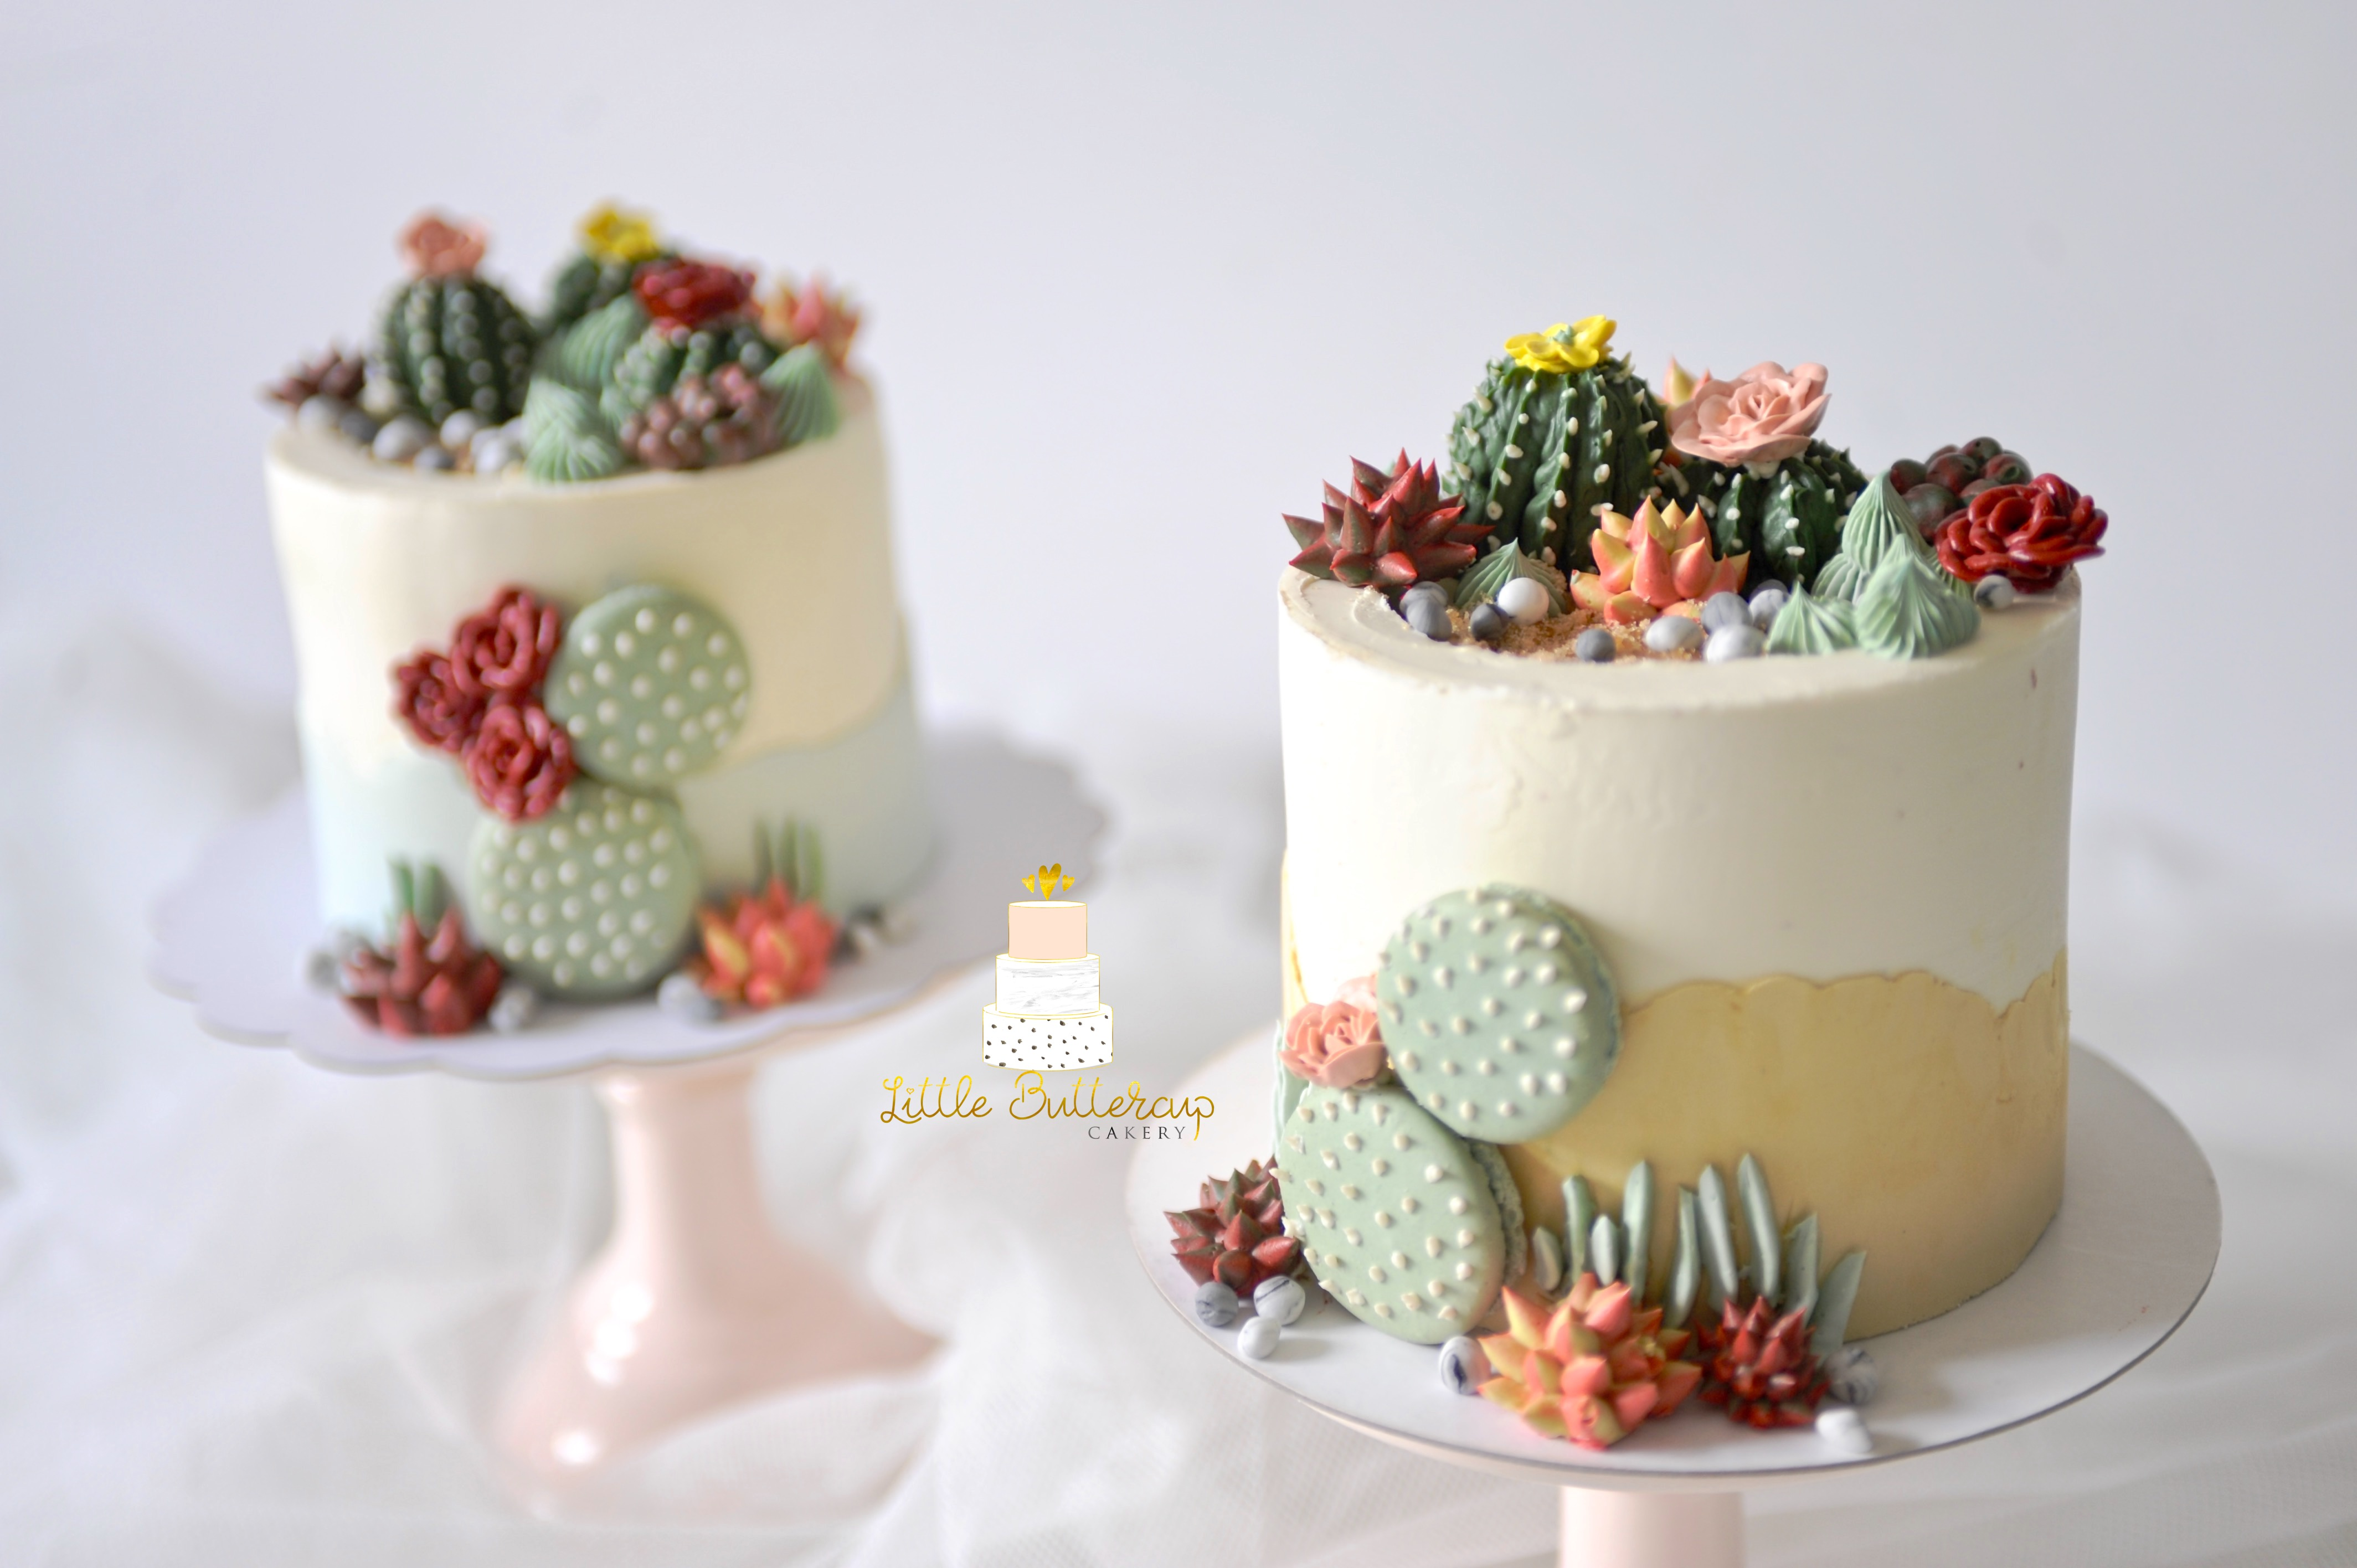 Buttercream cake with hand piped buttercream cactus